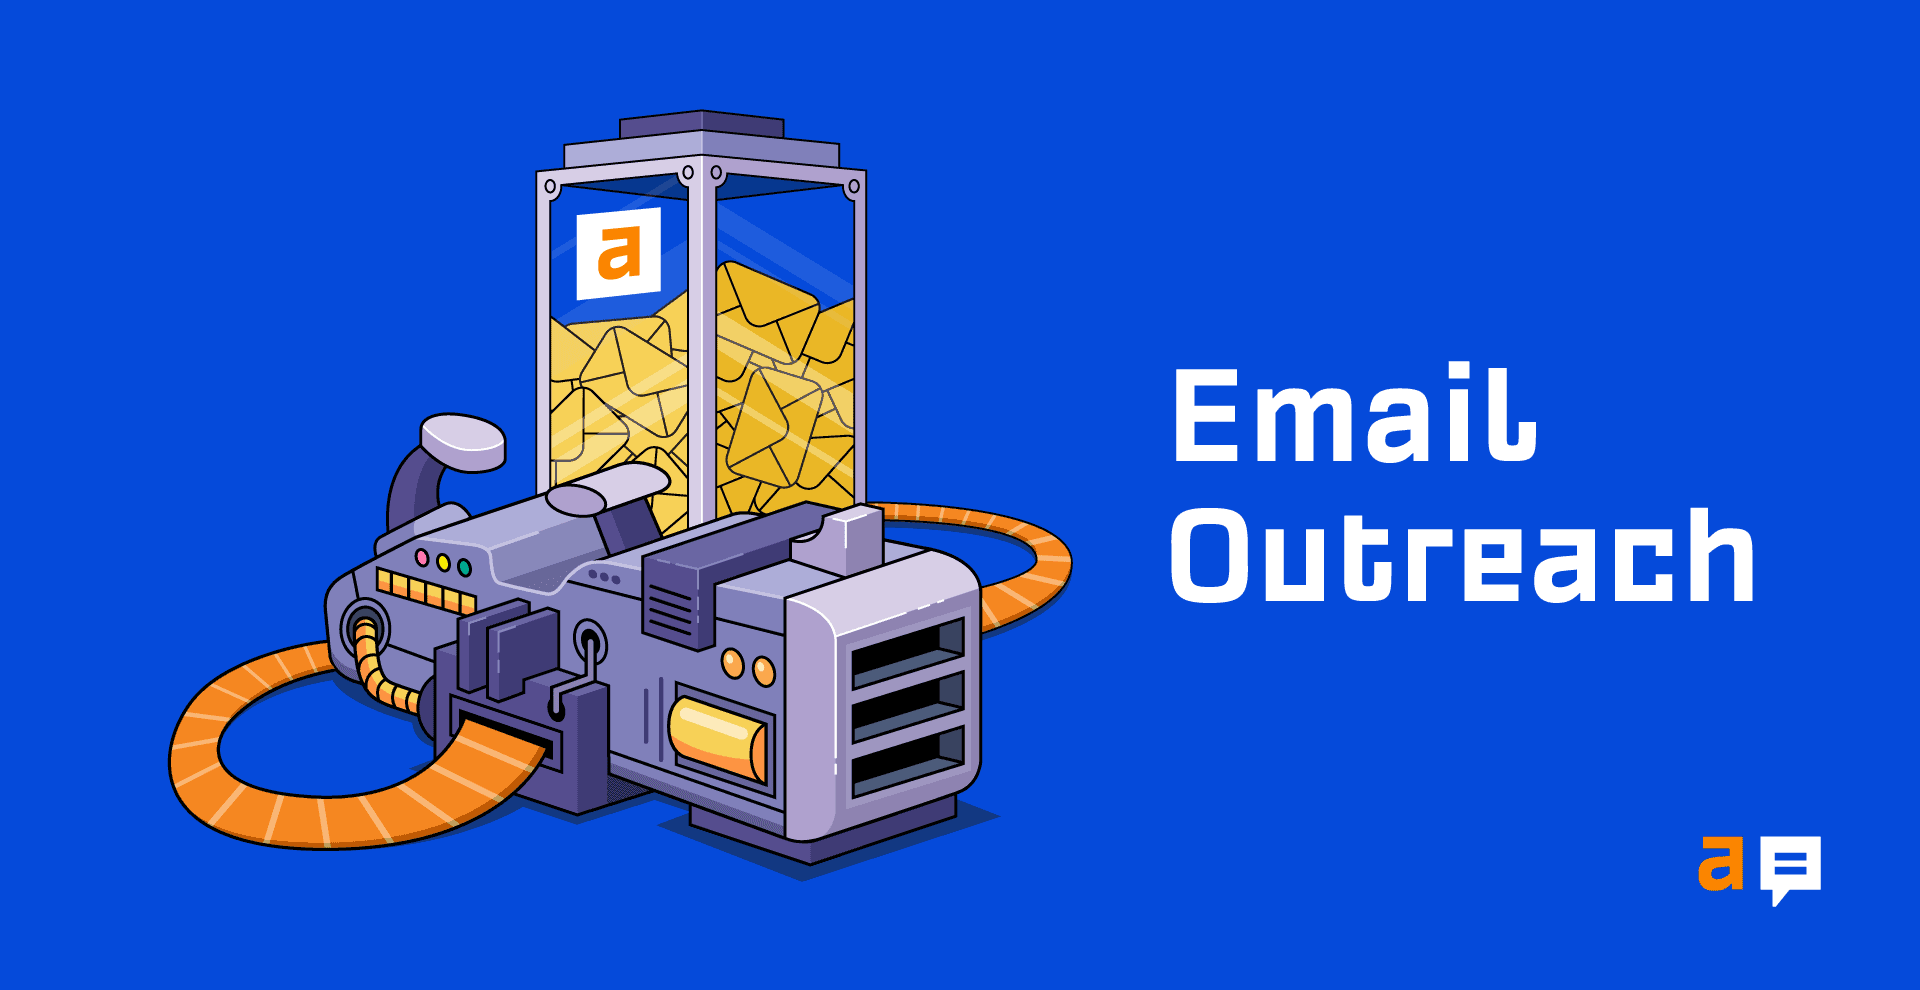 5 Lessons From 111 Emails